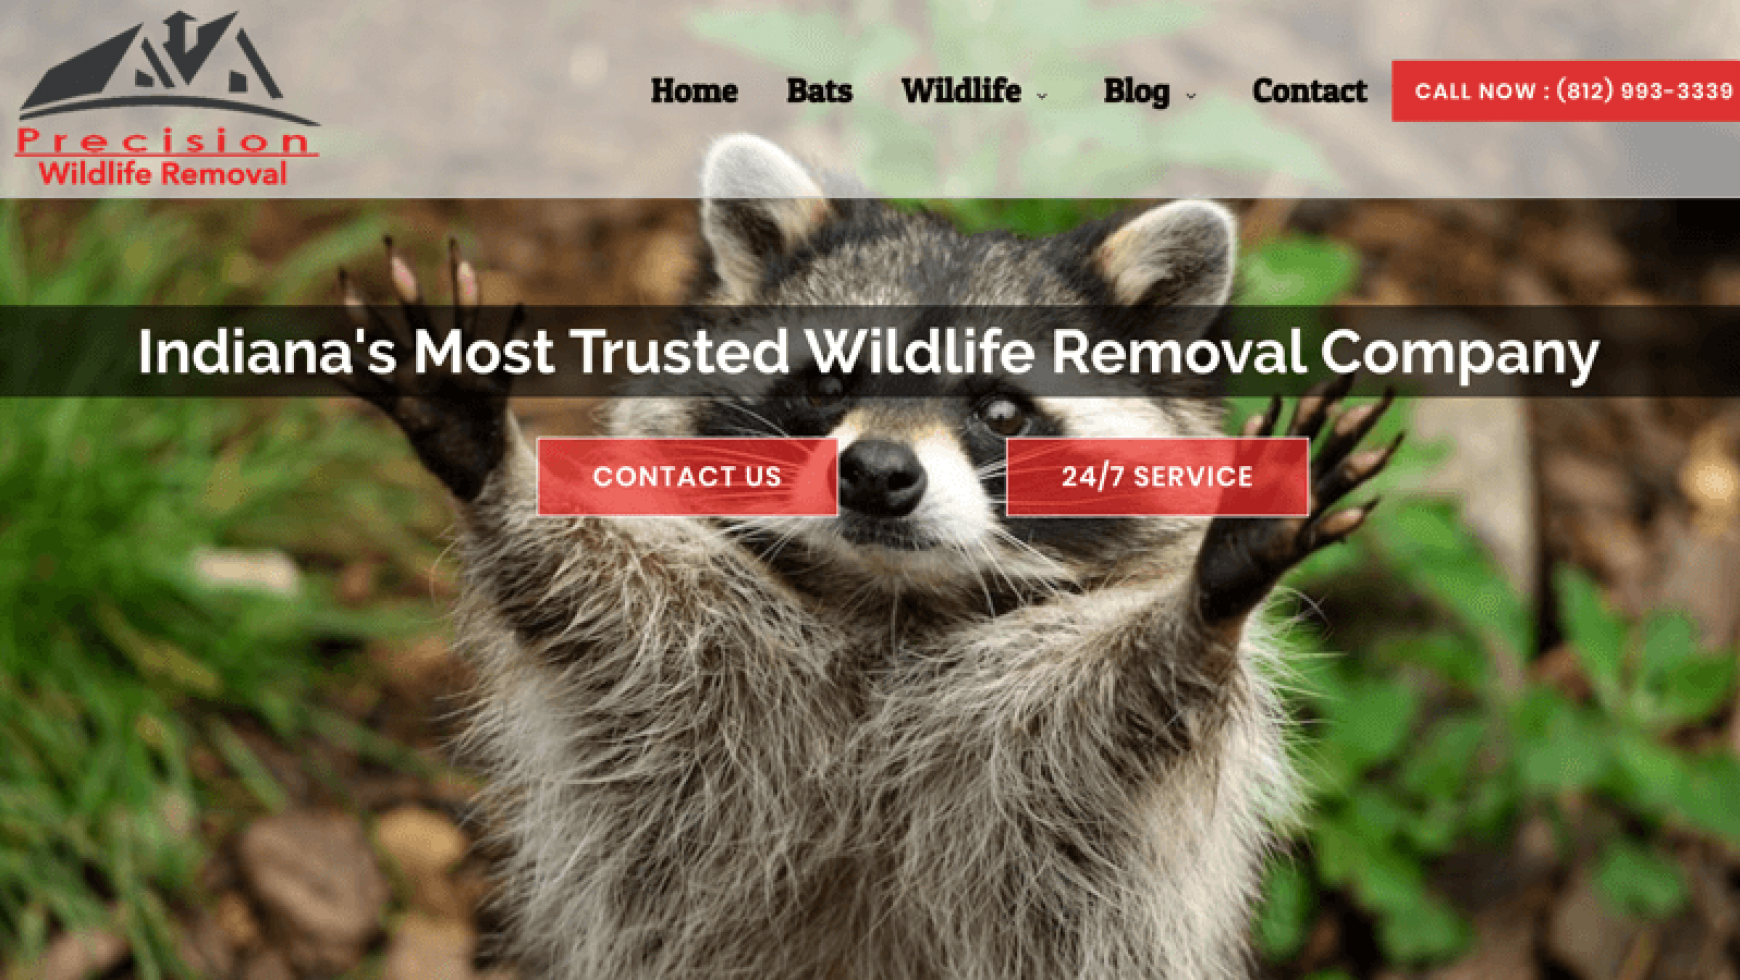 Precision Wildlife Removal Website – Indiana